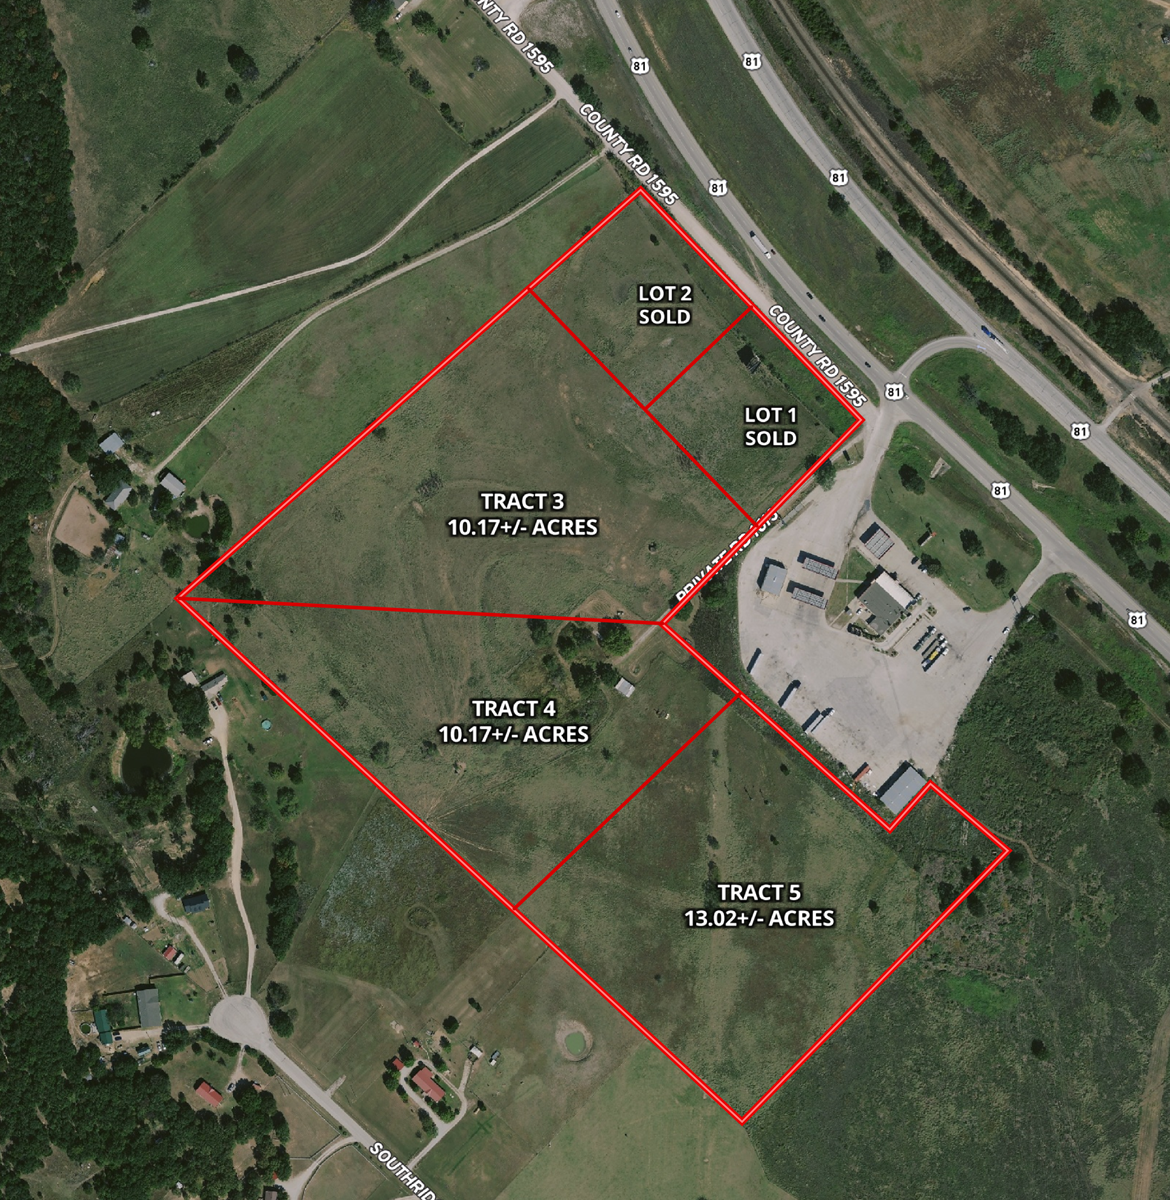 COMMERCIAL PROPERTY LAND FOR SALE ALVORD WISE COUNTY TEXAS